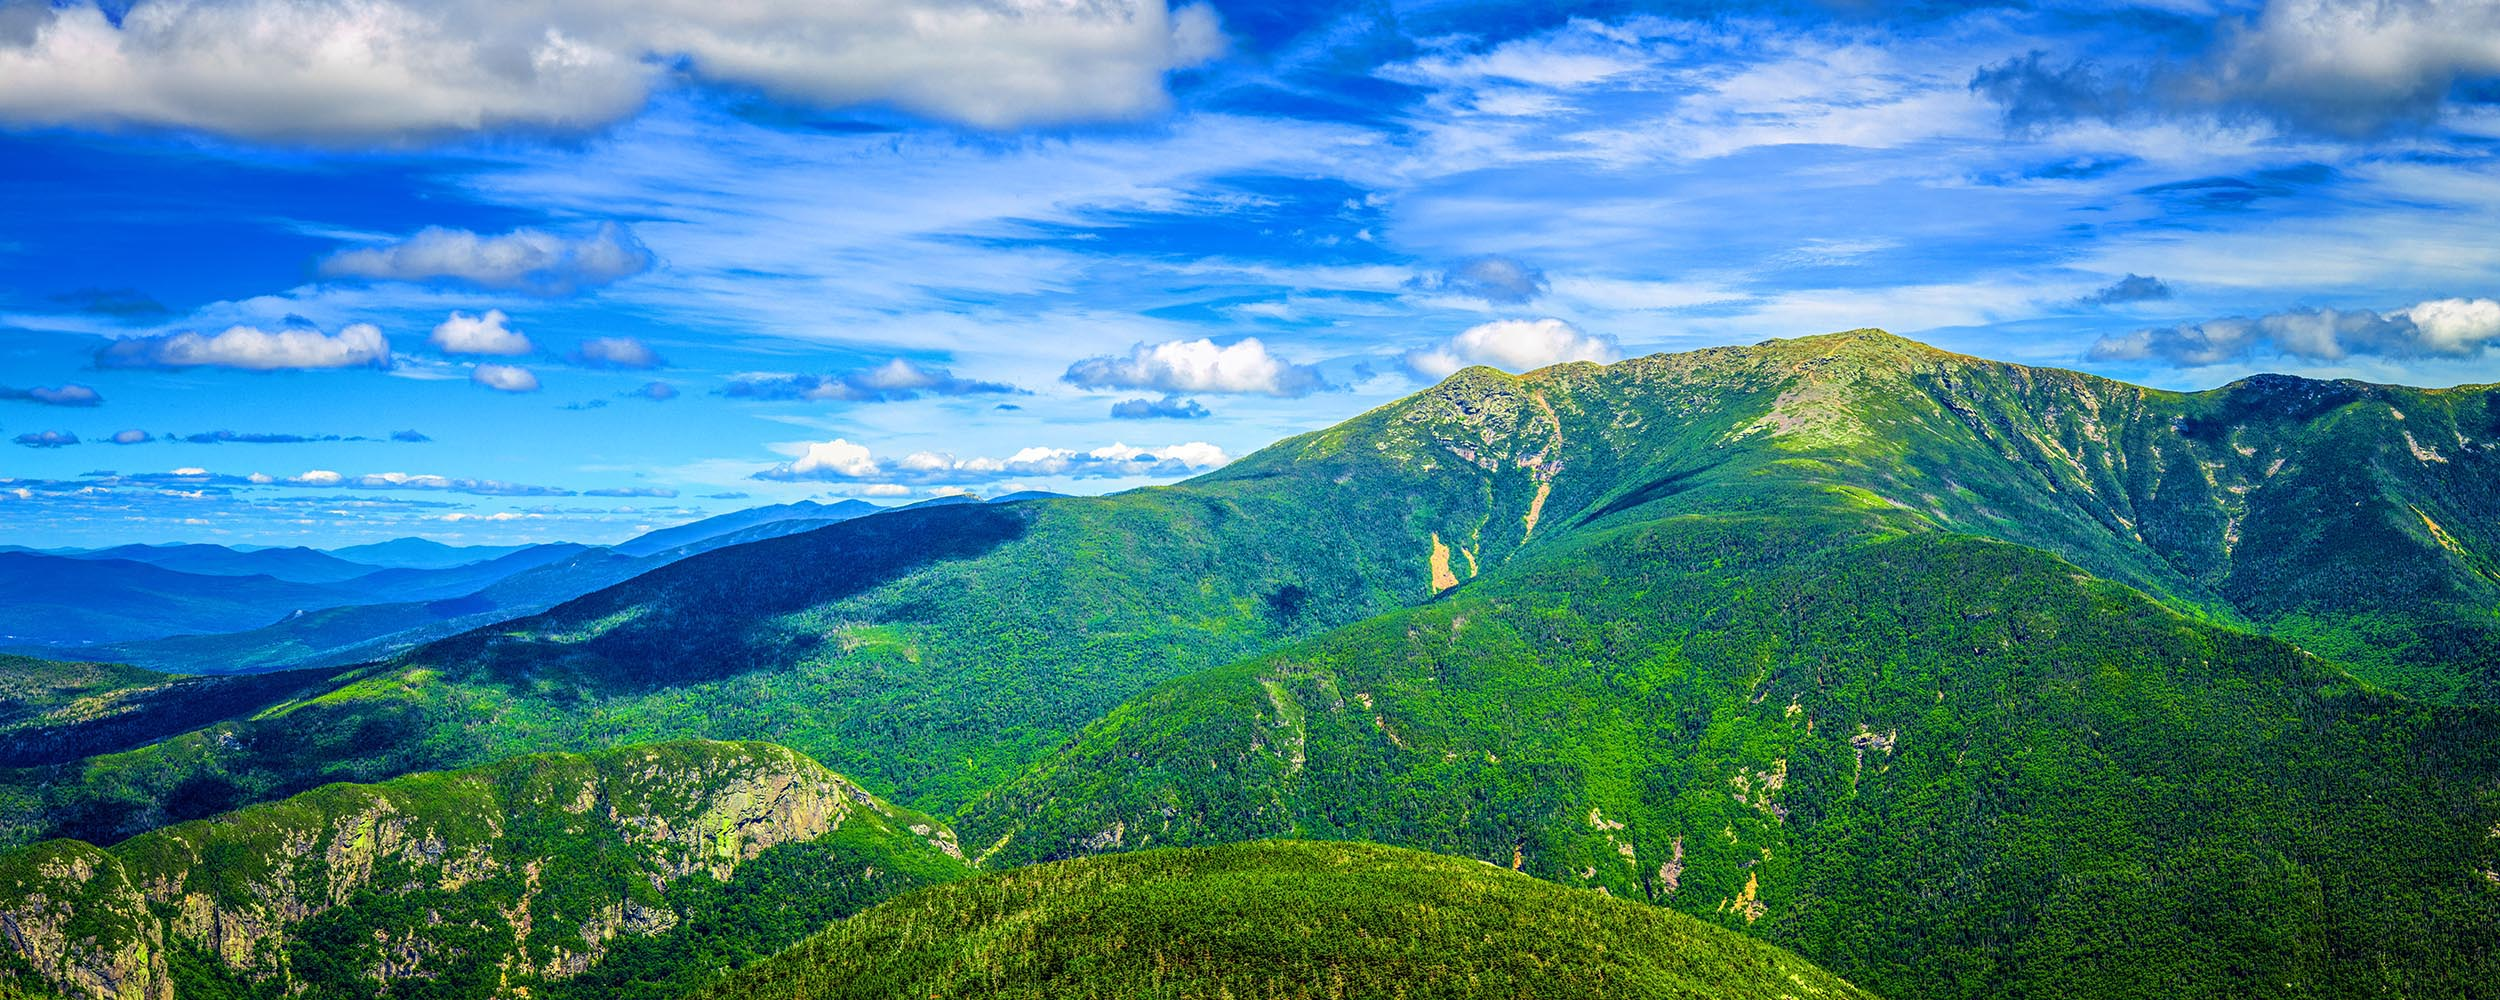 Franconia Ridge - White Mountains, New Hampshire